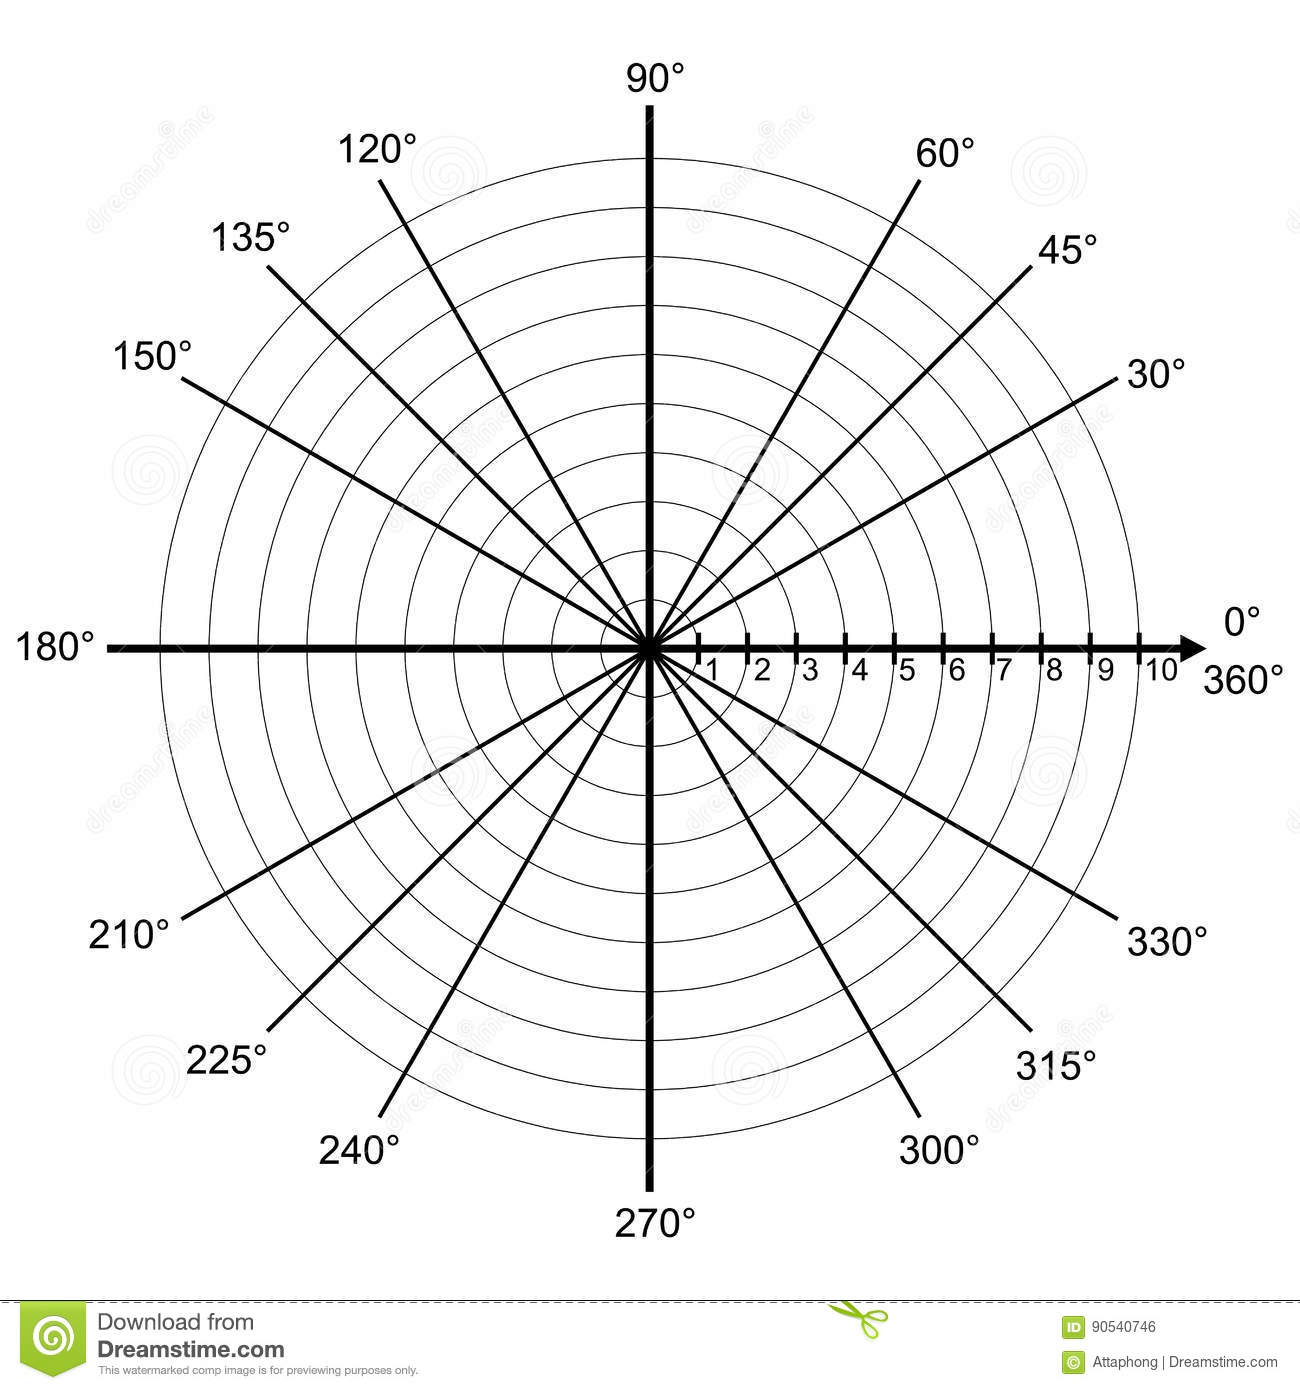 360 degree circle diagram cruise control wiring chevrolet blank polar graph paper protractor pie chart vector